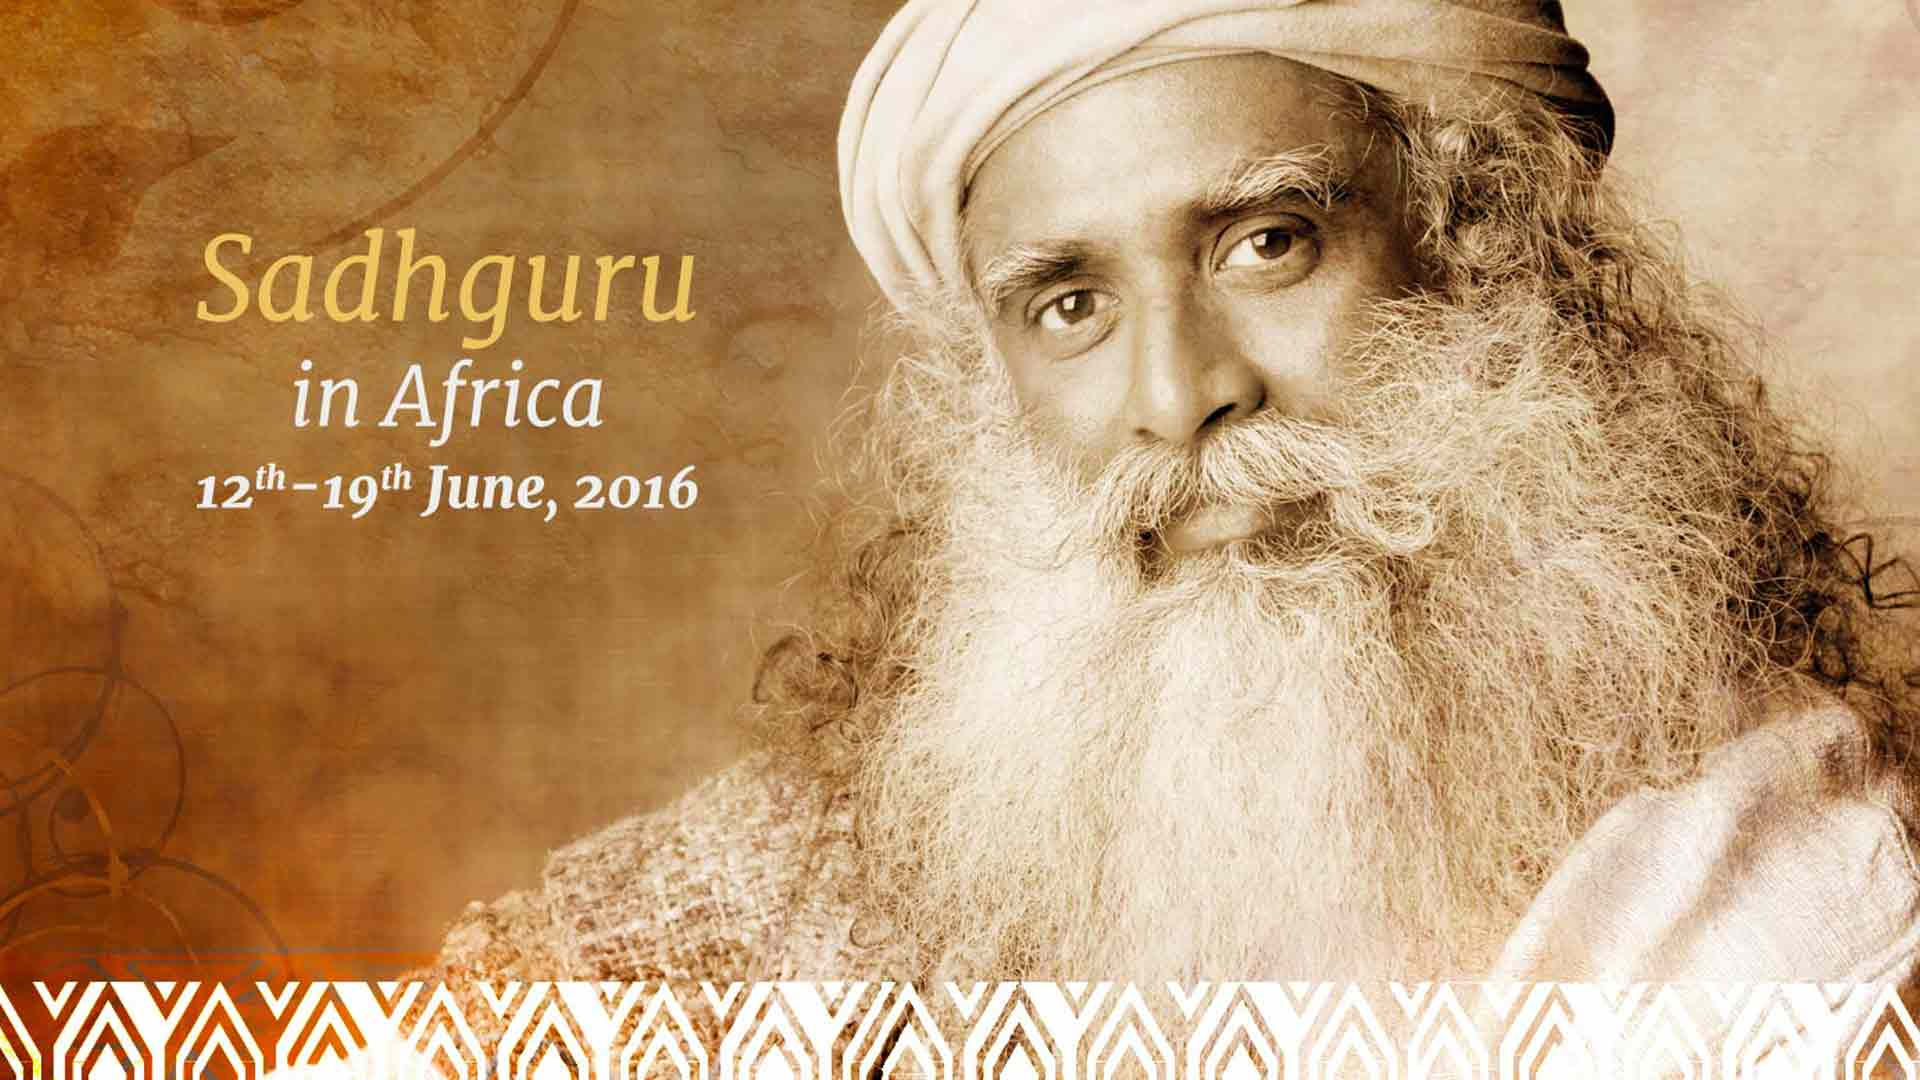 Sadhguru's First Official Visit to Africa: June 12-19